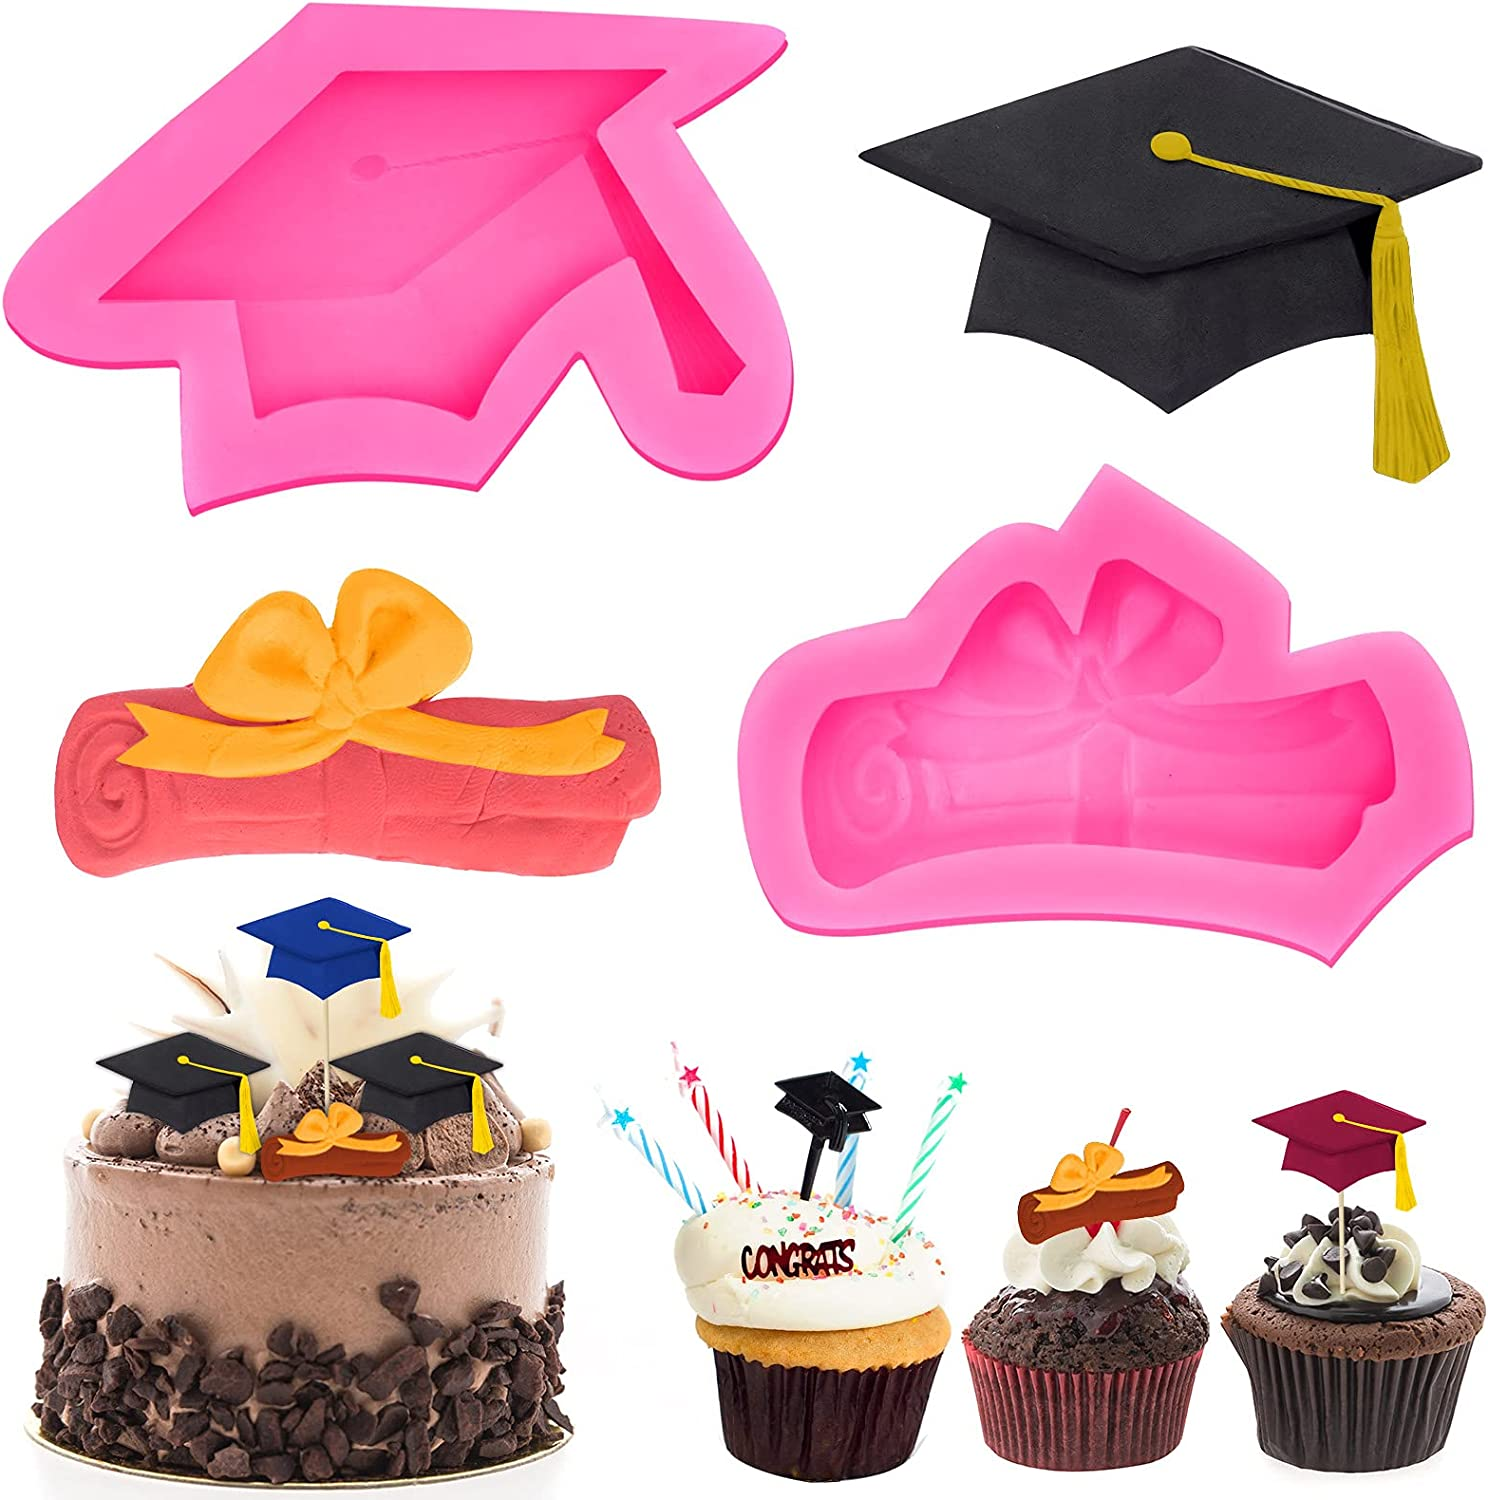 Graduation Over item handling Silicone Mold for Chocolate 2 Cap Dip Non Stick Max 48% OFF Pack